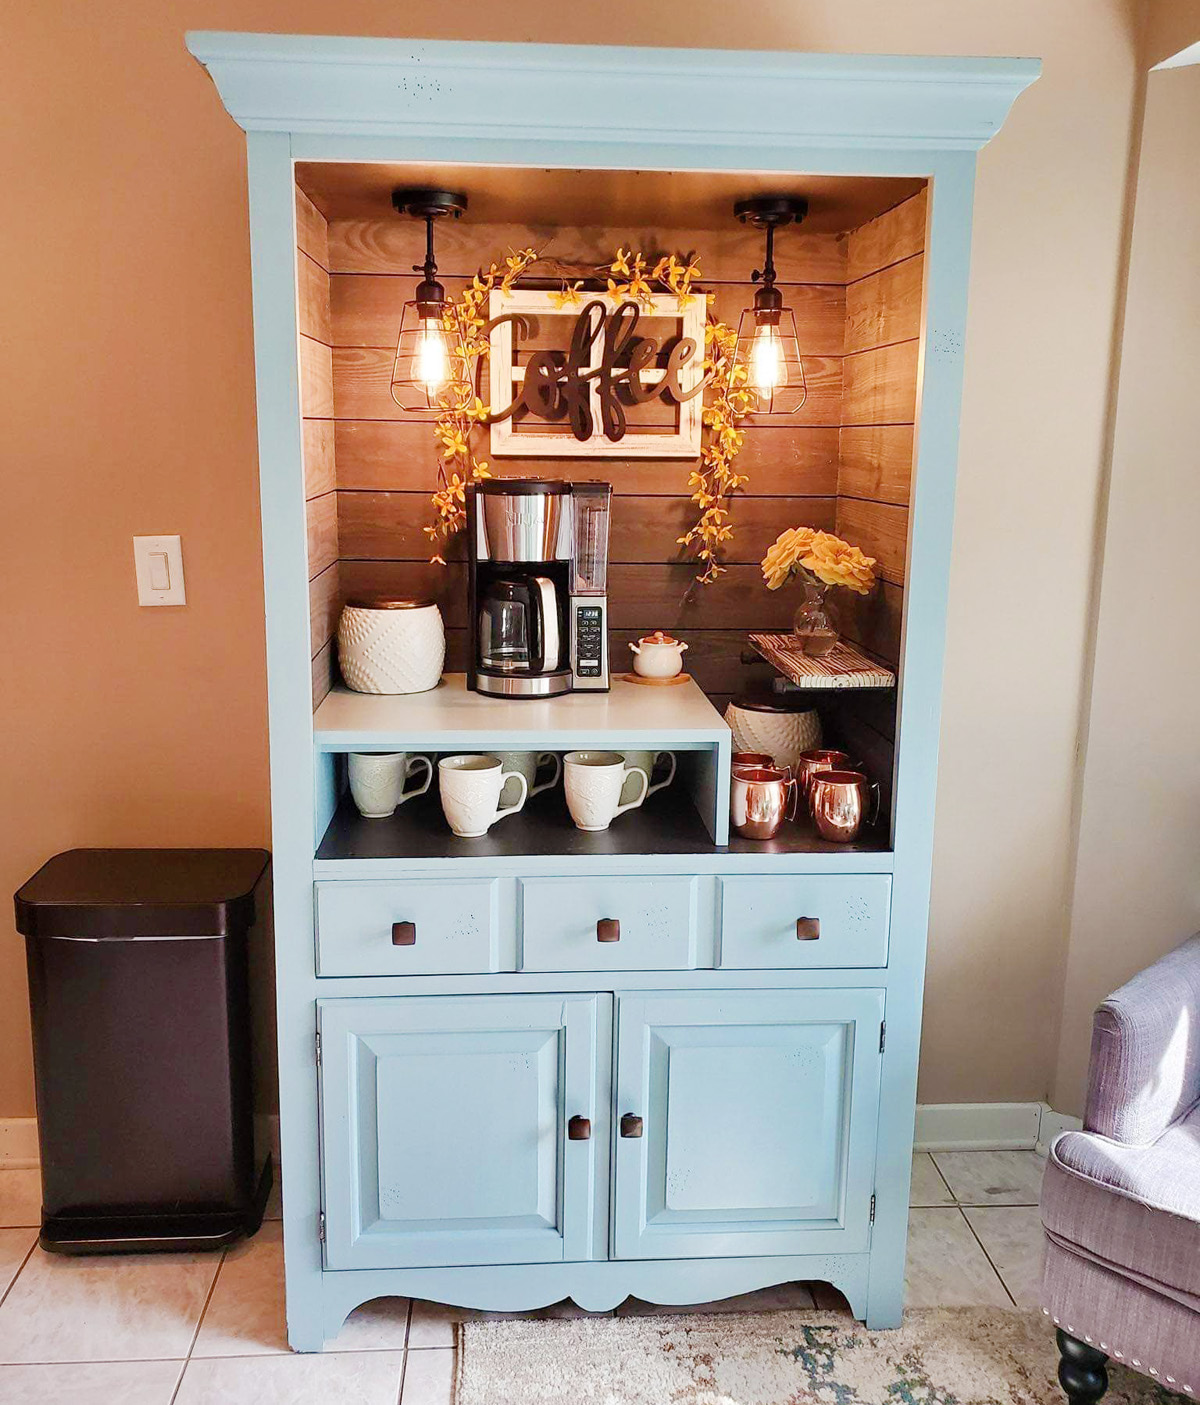 A blue hutch has been turned into a tea and coffee station.